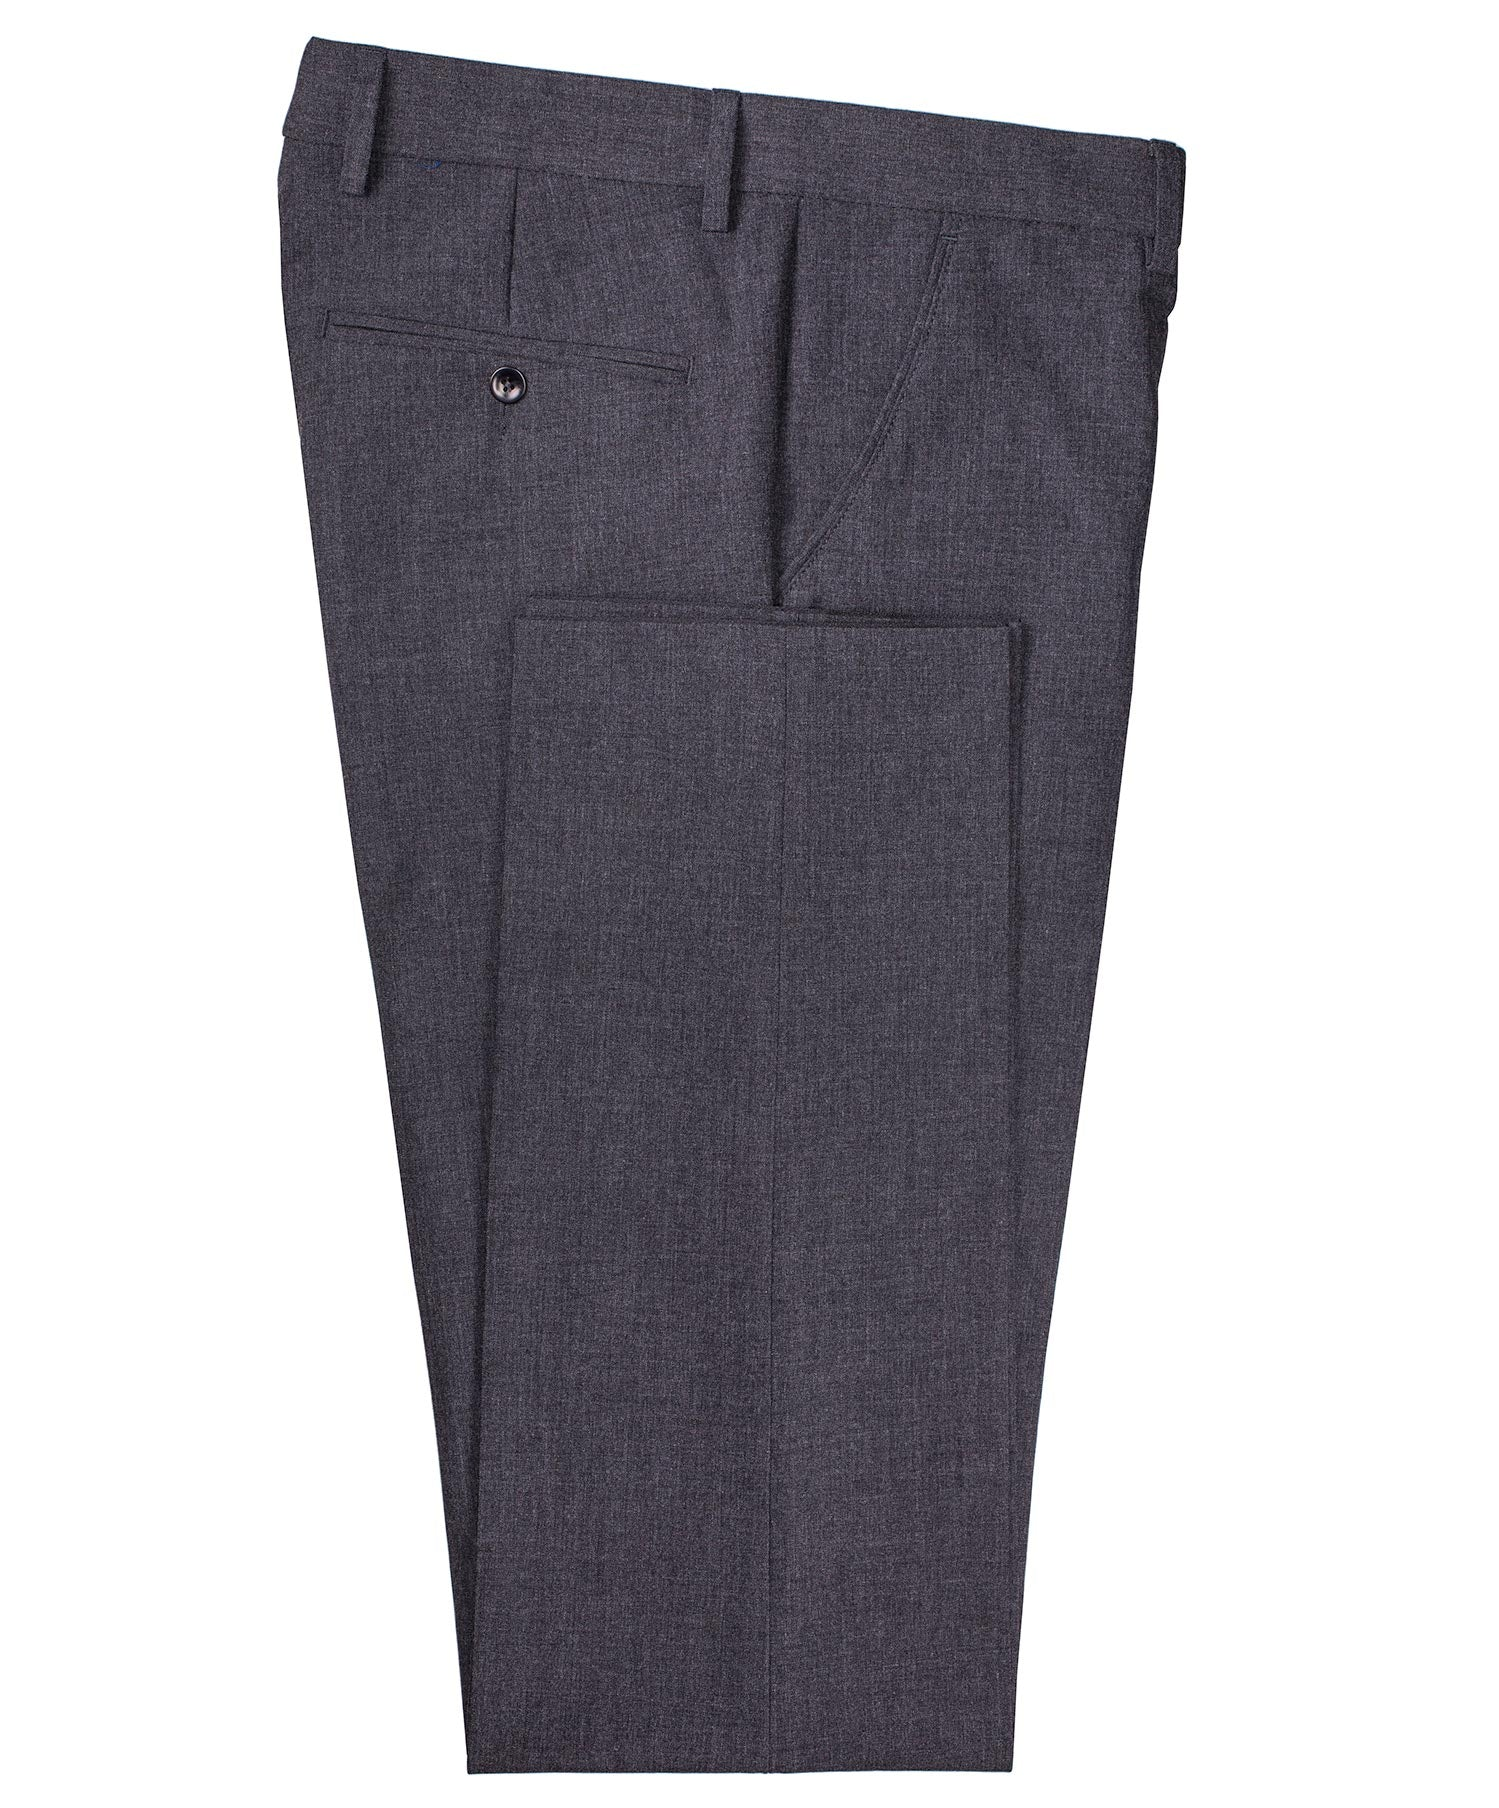 George Dark Grey Dress Pant